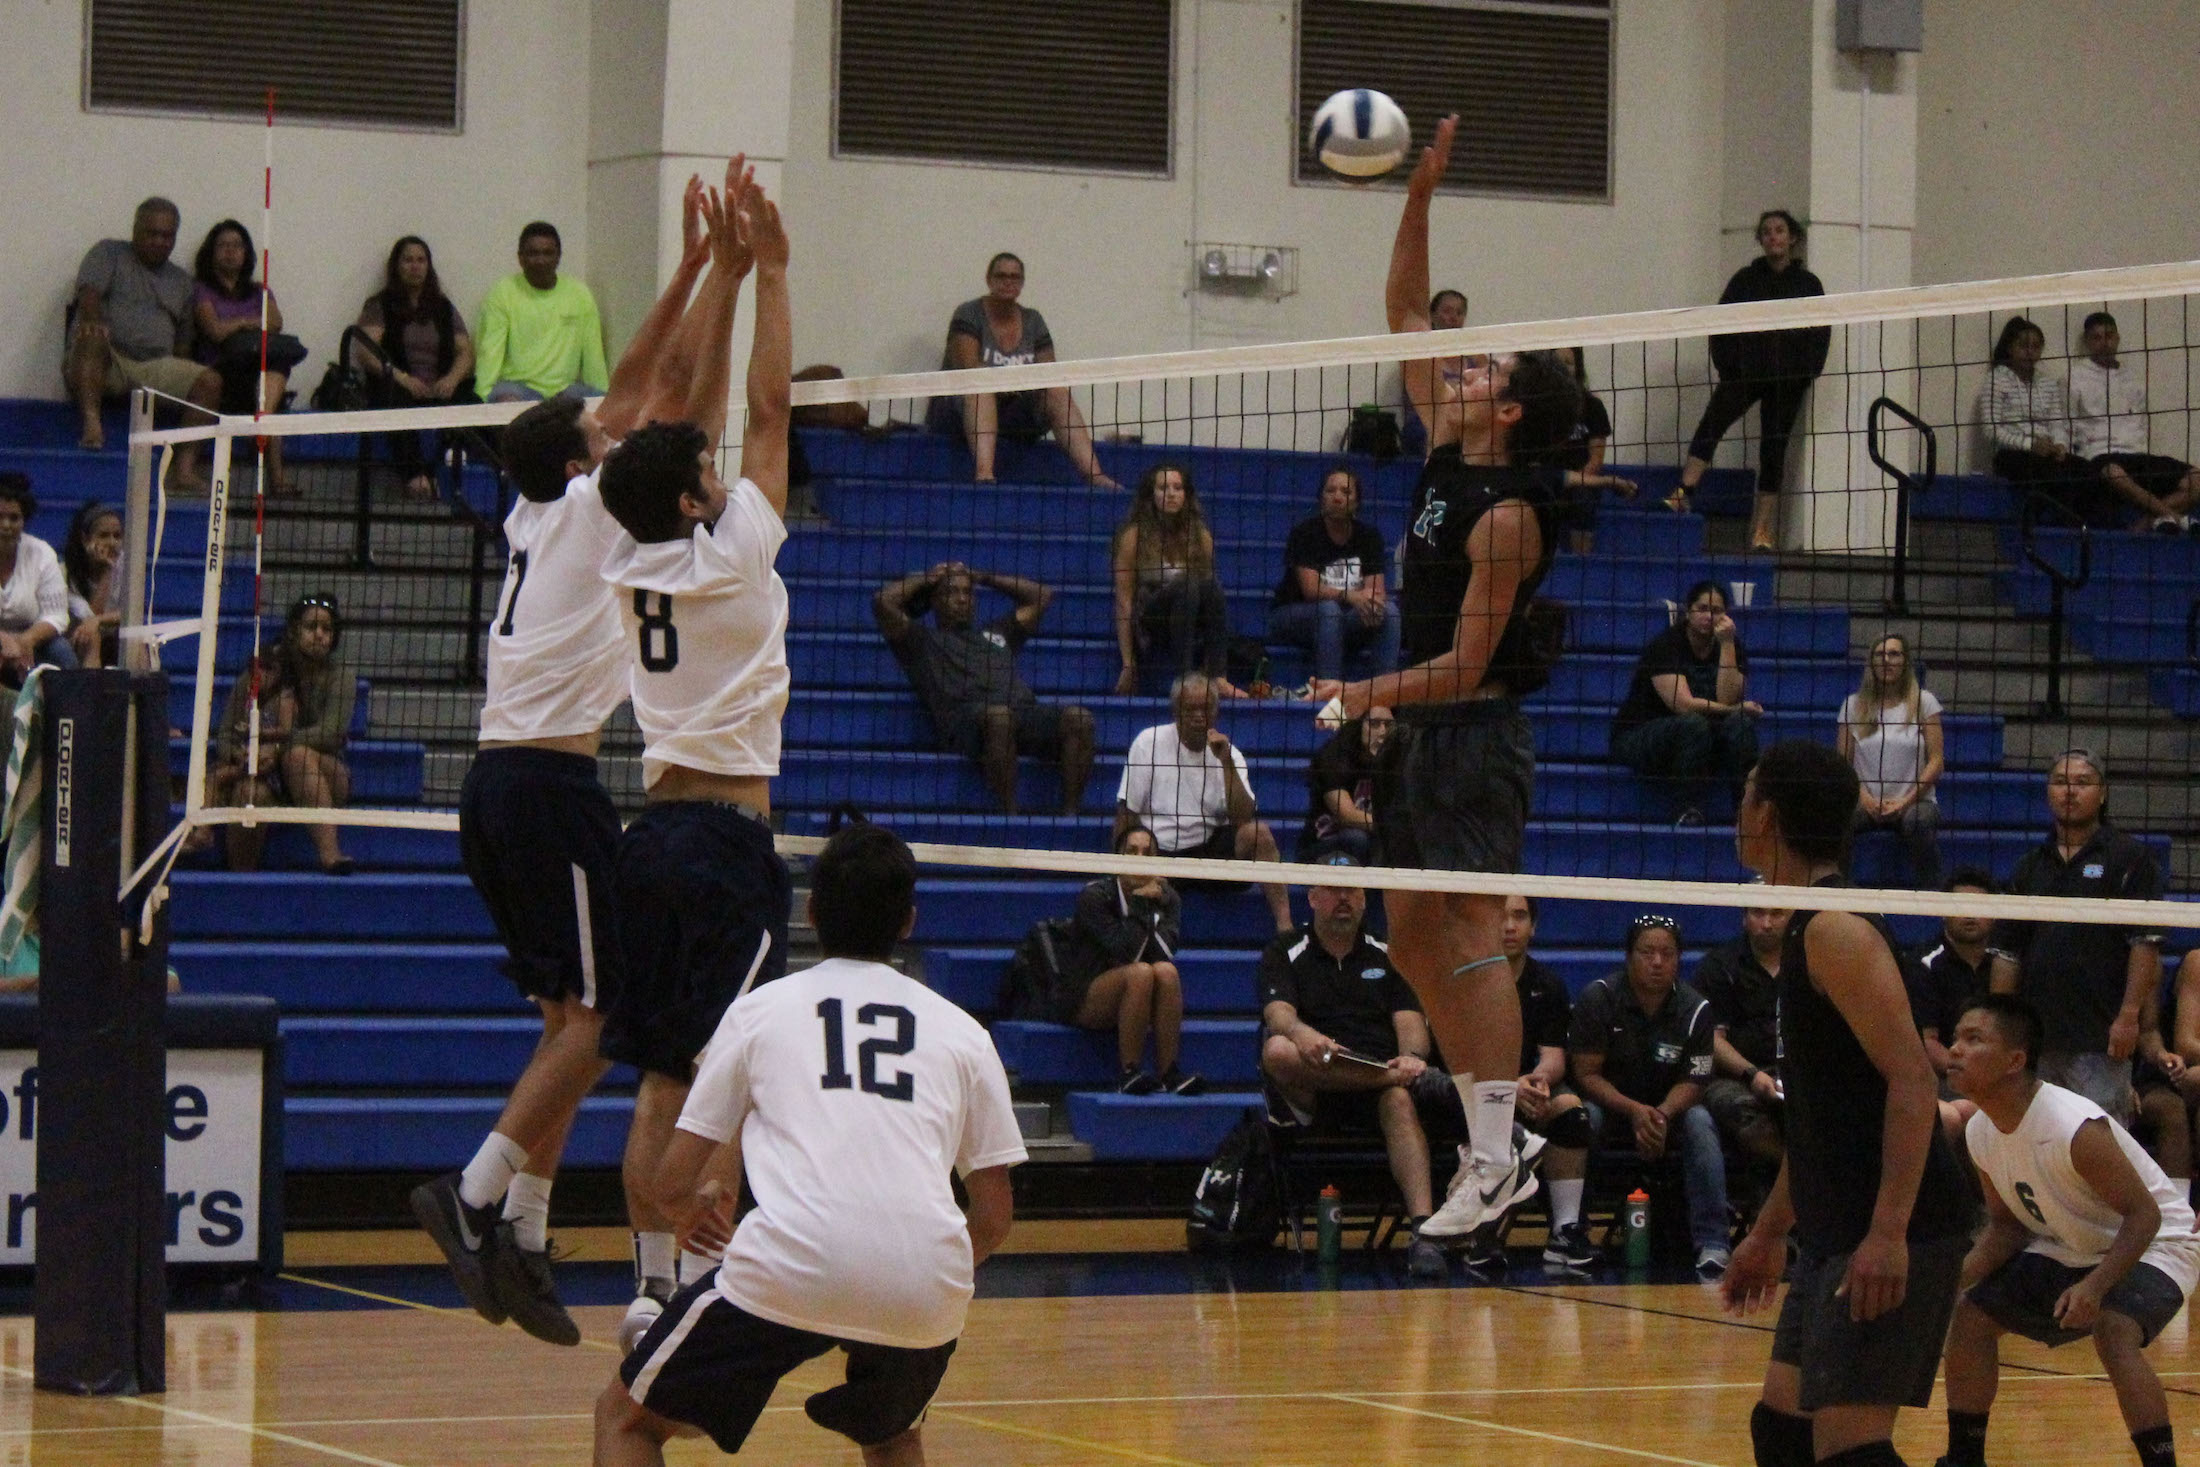 Seniors Hanalei Hoopai-Sylva and Keahi Jacintho jump for a block against Nā Aliʻi. The Warriors got their first win in four years against Nā Aliʻi, Saturday, April 15, at their home gym.